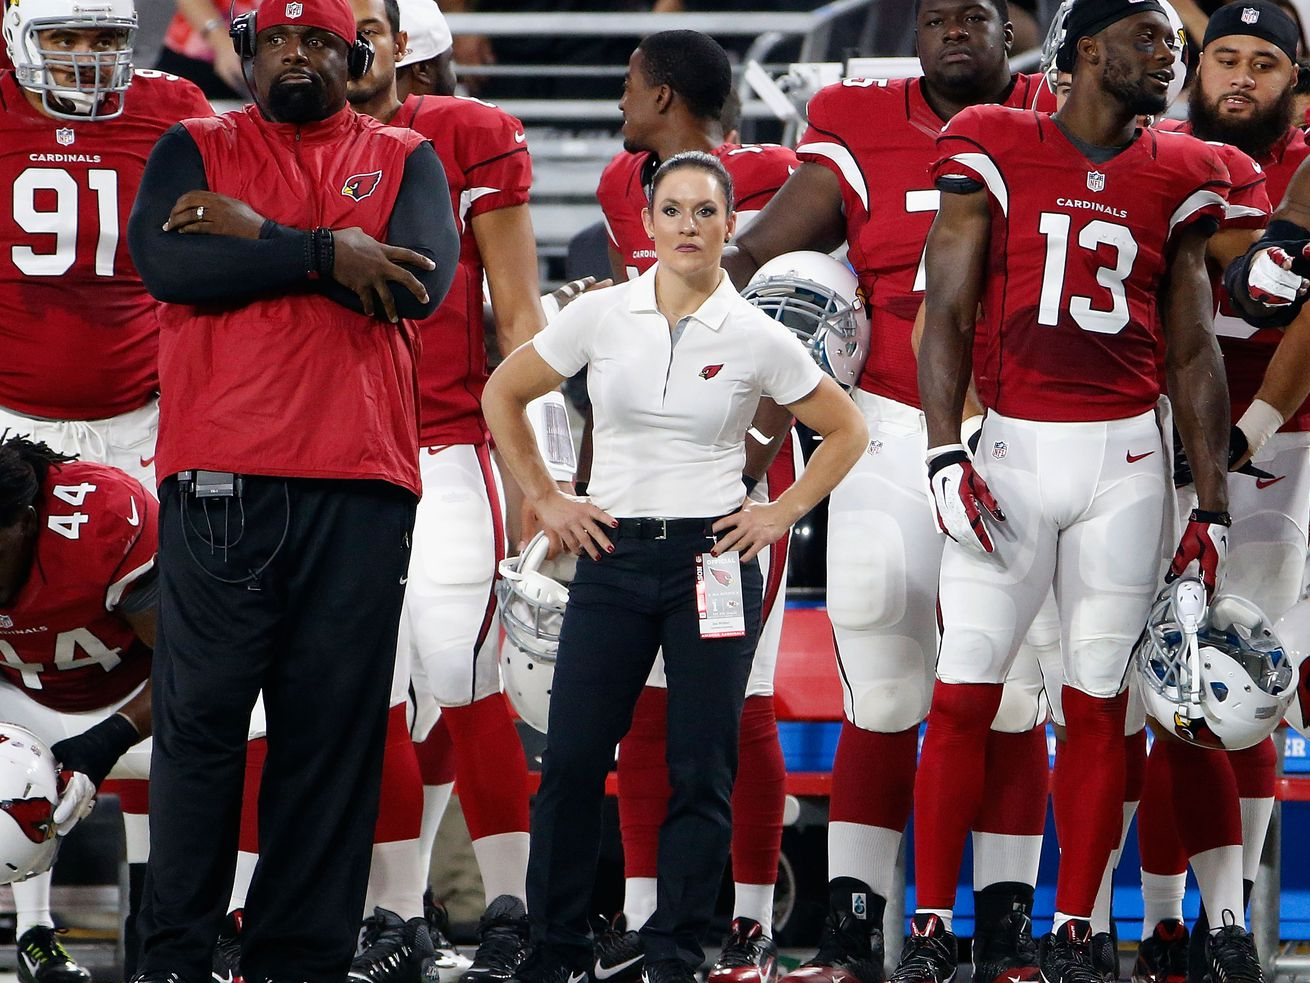 Jen and tonic: Welter was a trendsetter, but there's more to do to get more women in NFL